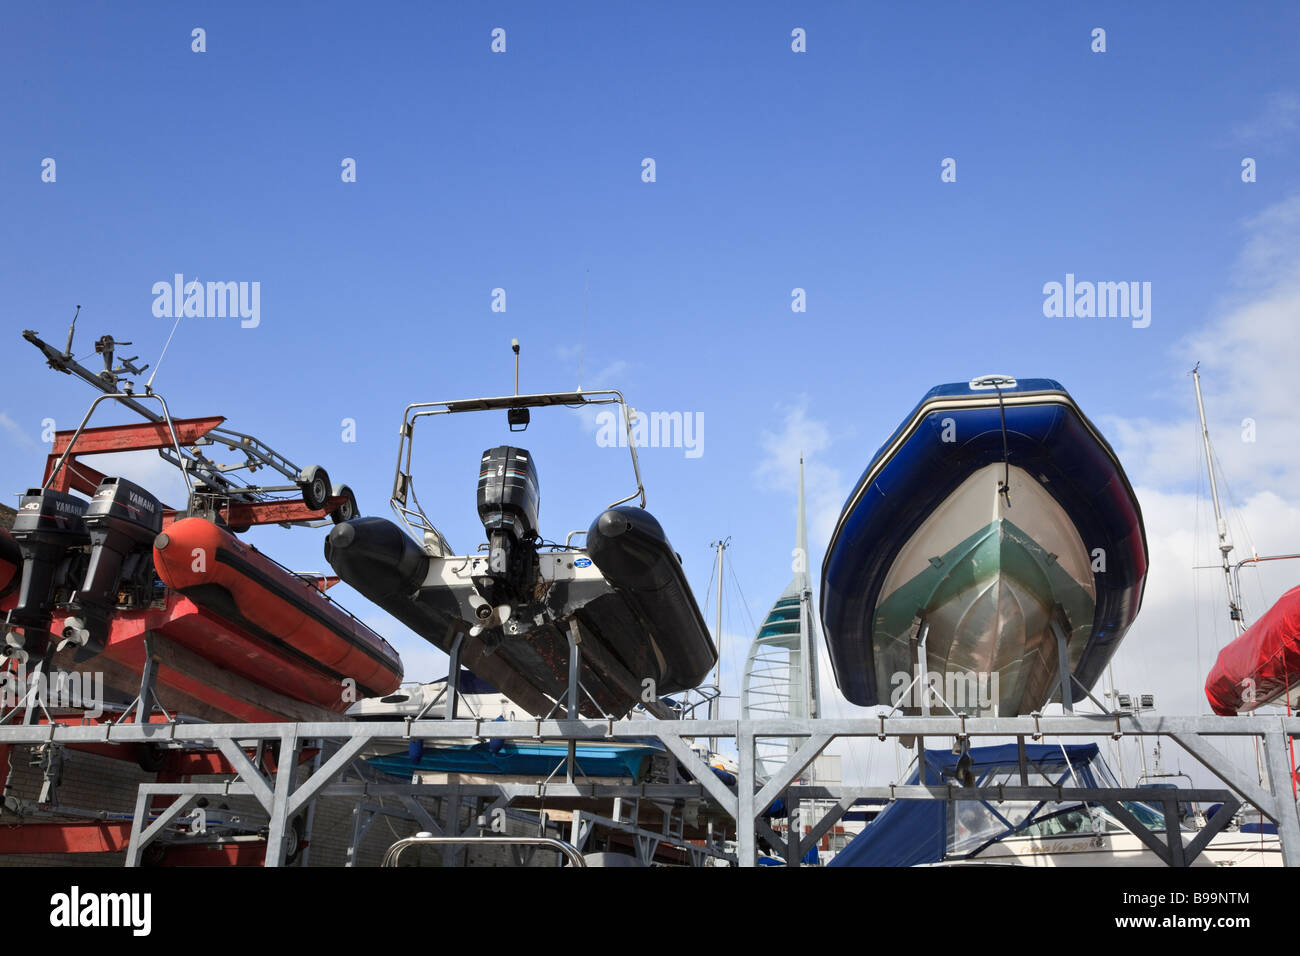 RIBs in a Rack in Portsmouth showing the outboard motors. - Stock Image